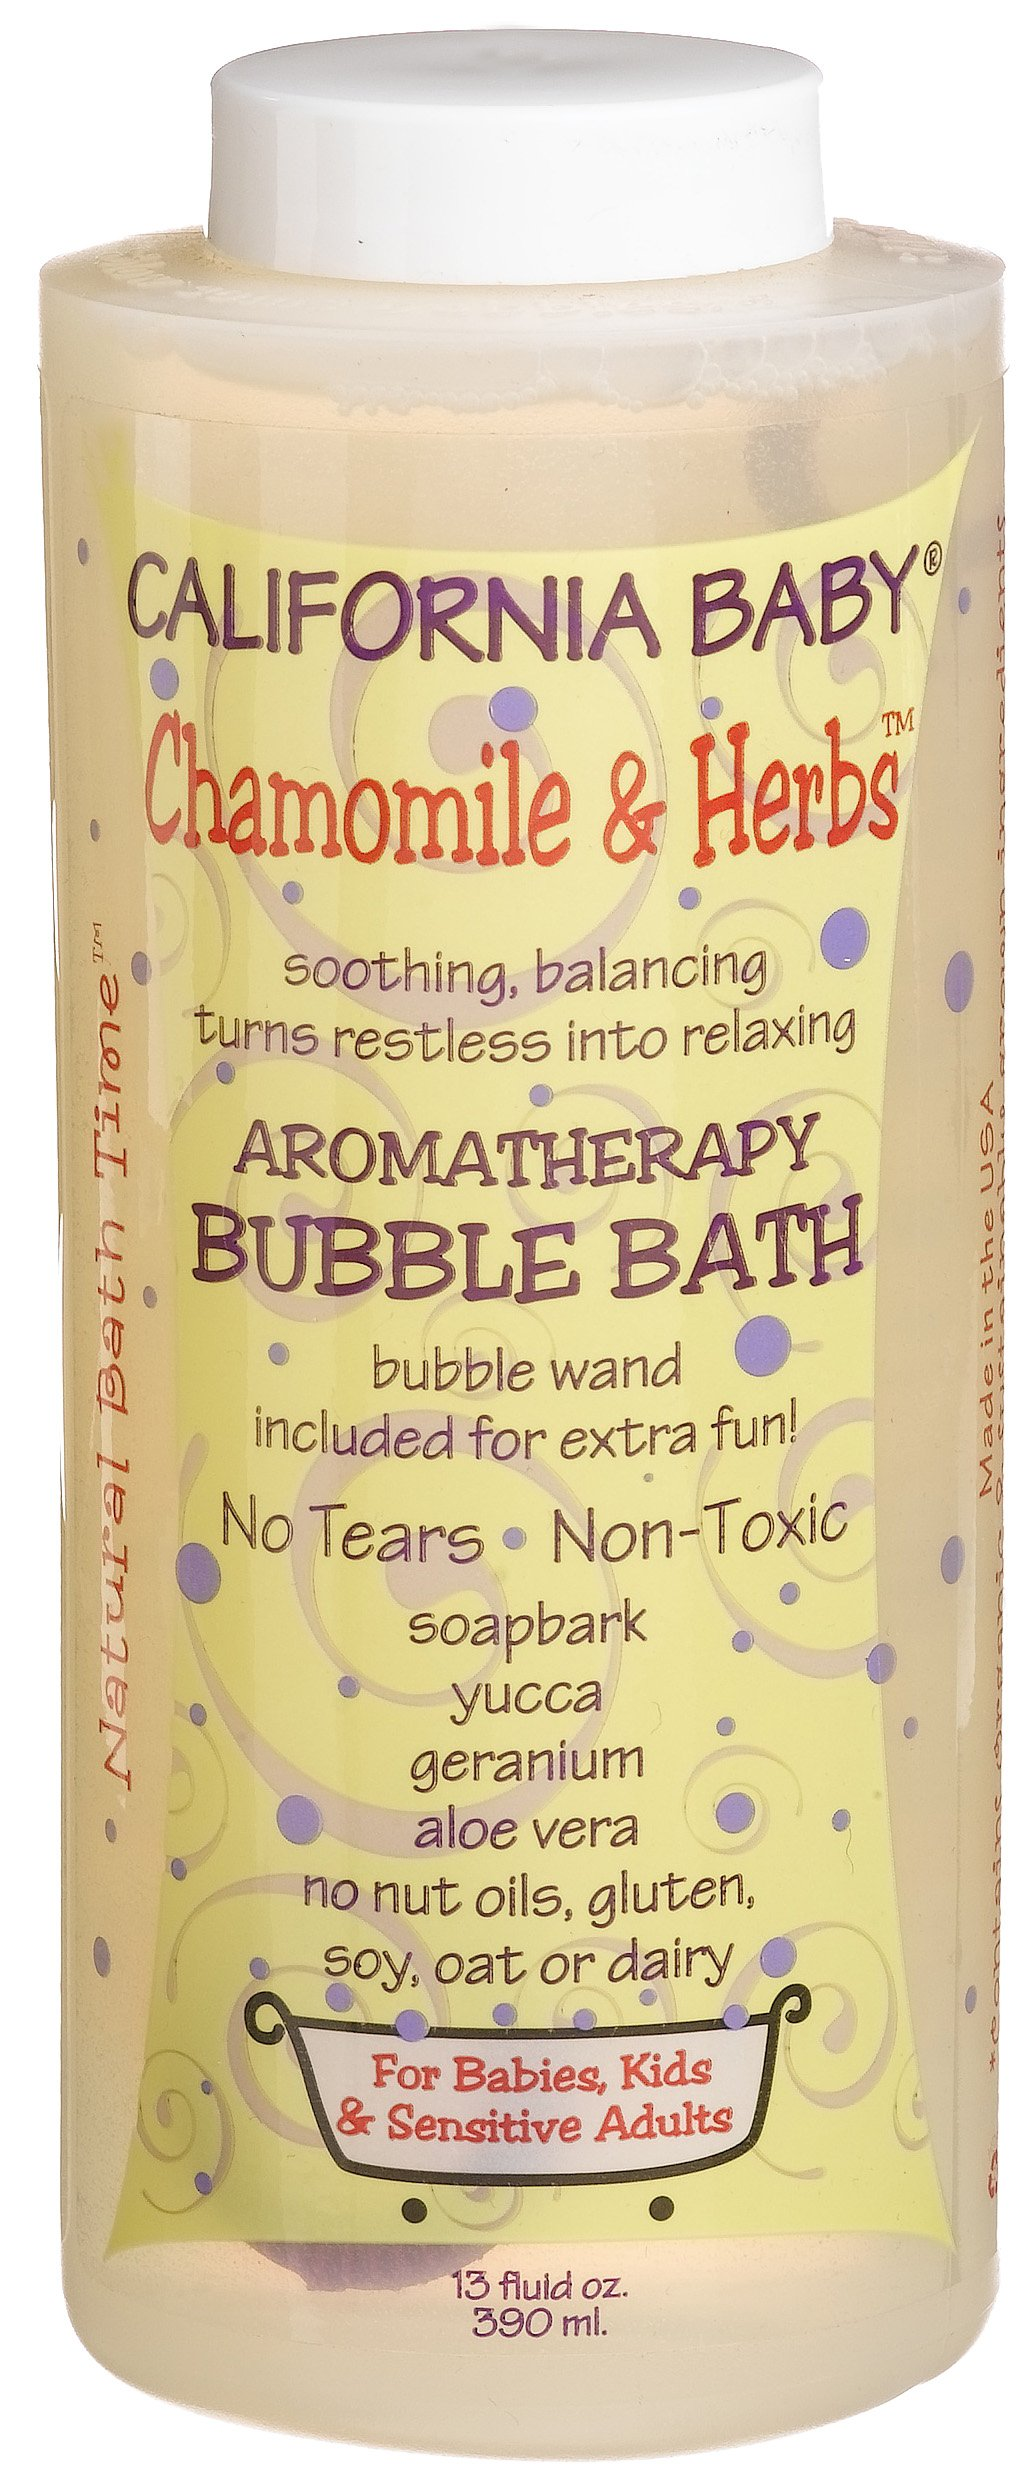 California Baby Bubble Bath - Chamomile & Herbs, 13 oz (Pack of 2) by California Baby